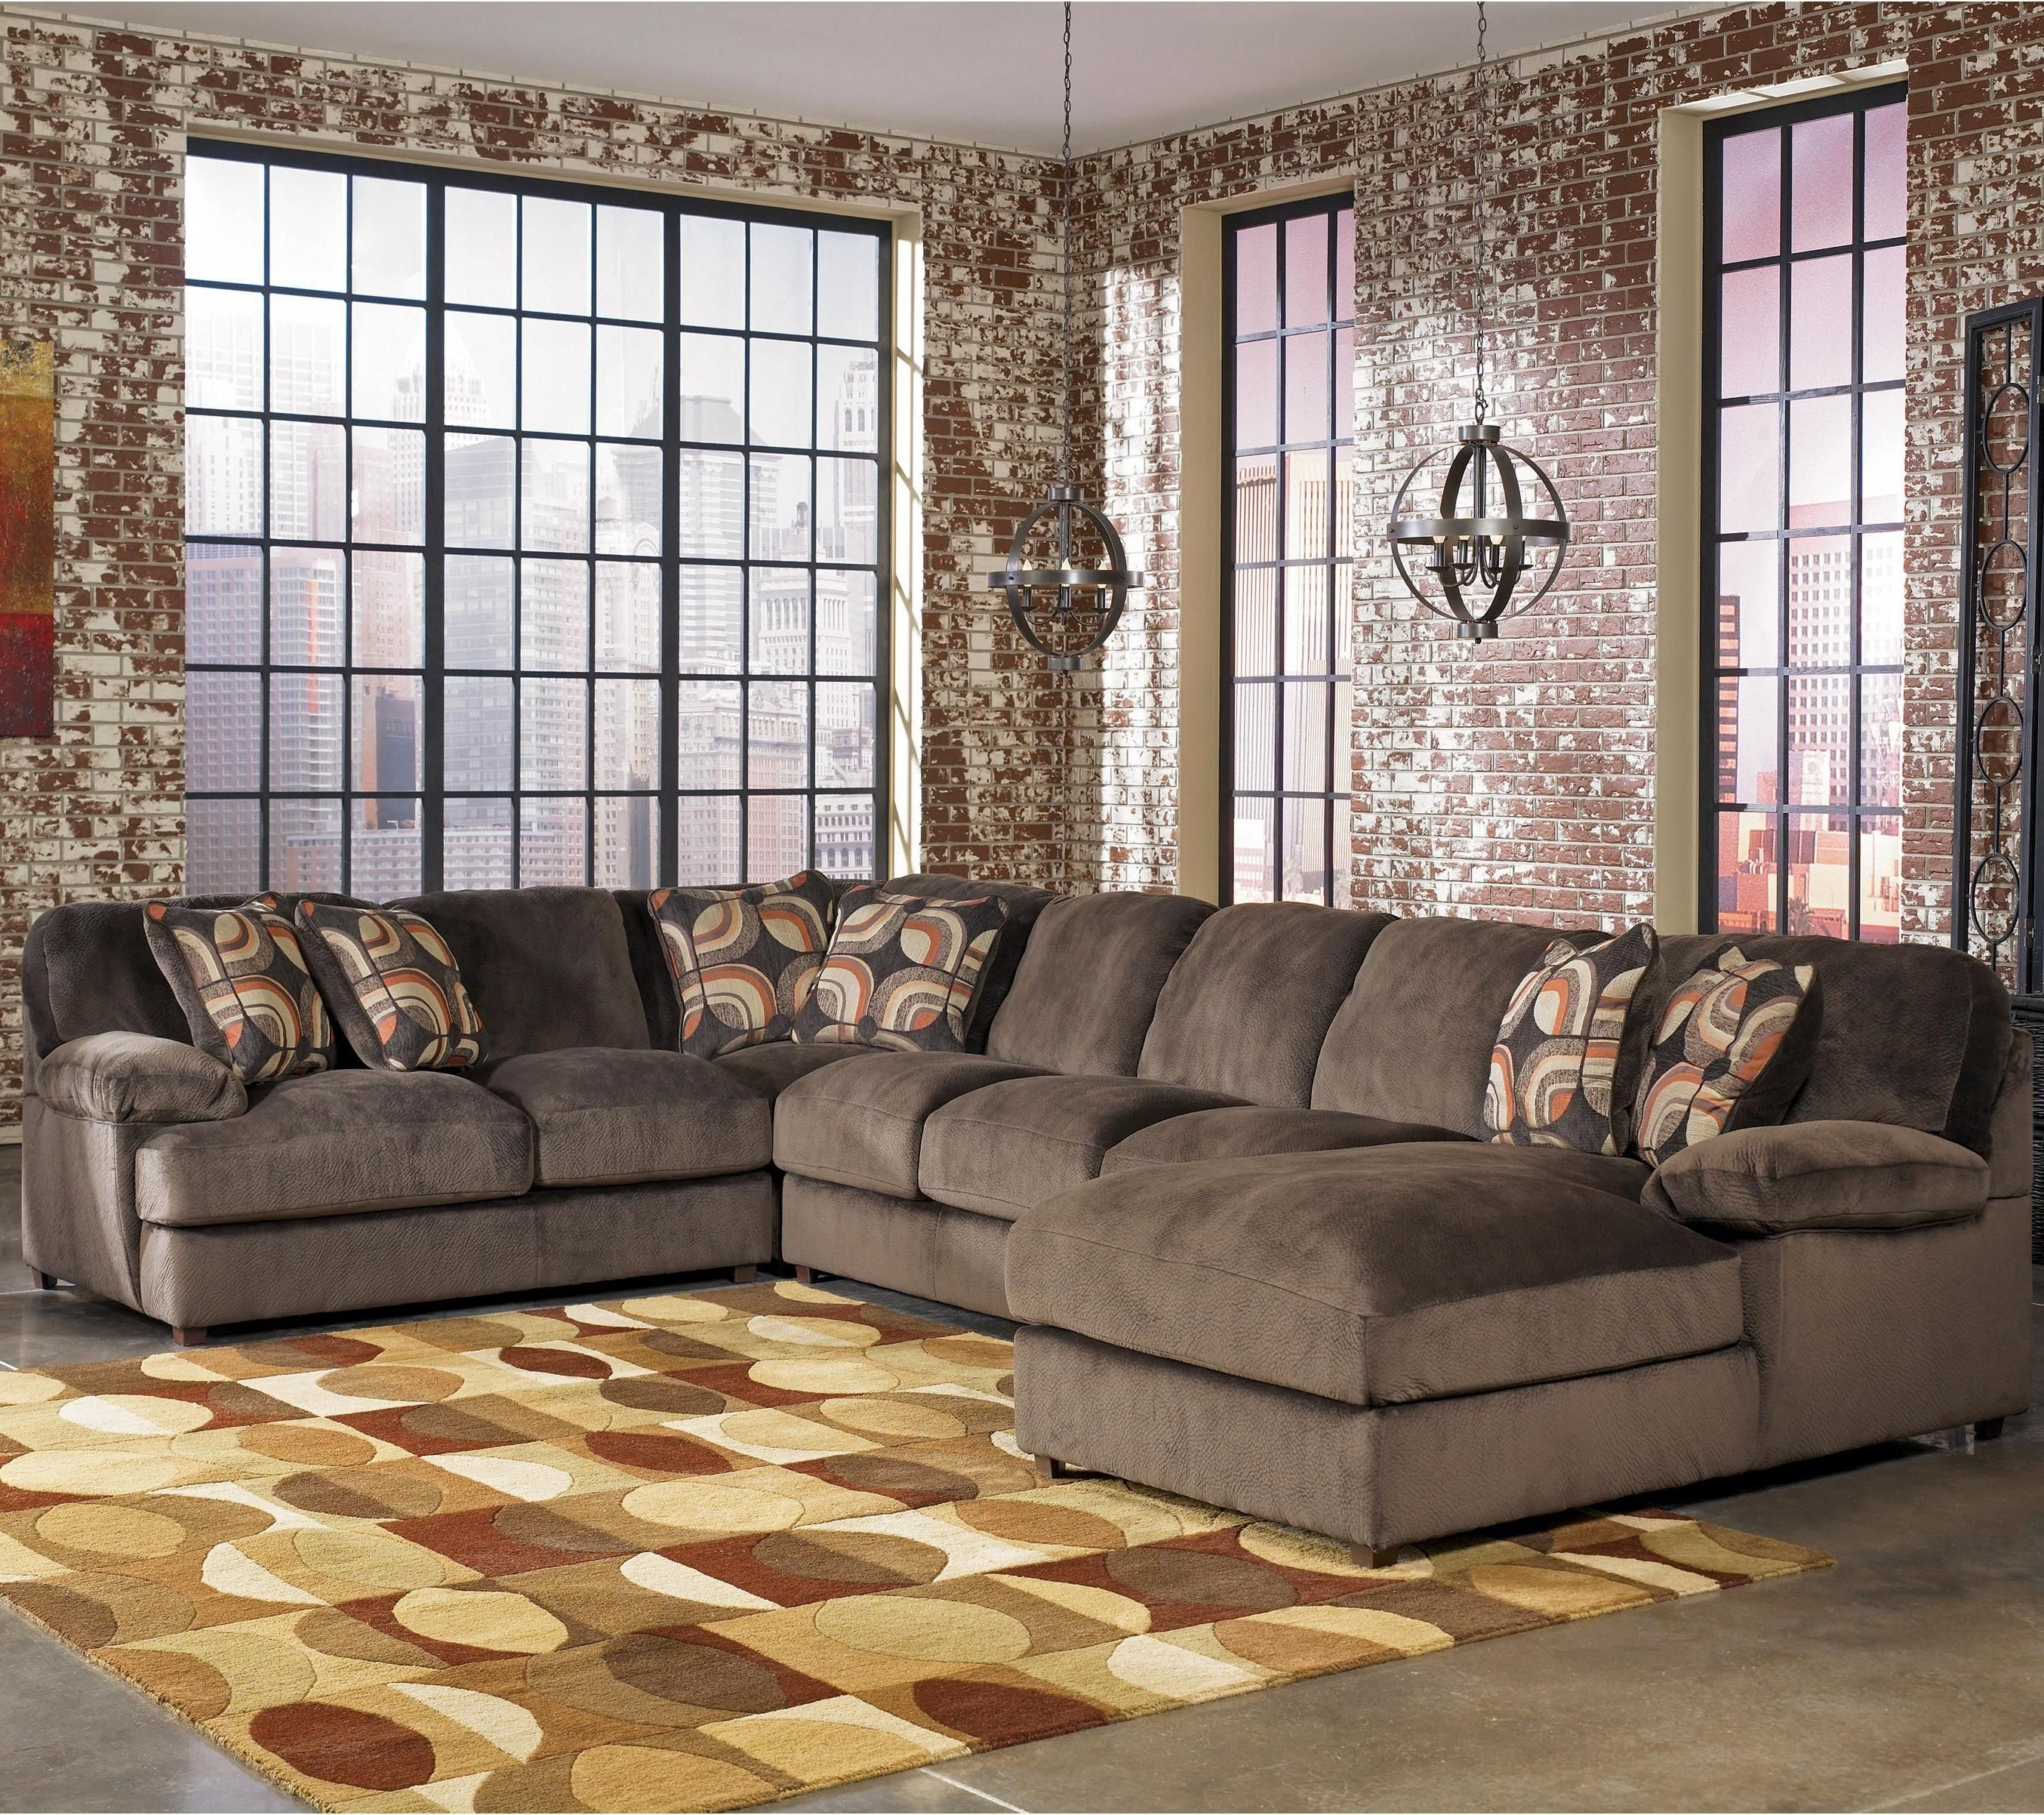 Flood Moultrie With Sam Levitz Sectional Sofas (View 10 of 20)